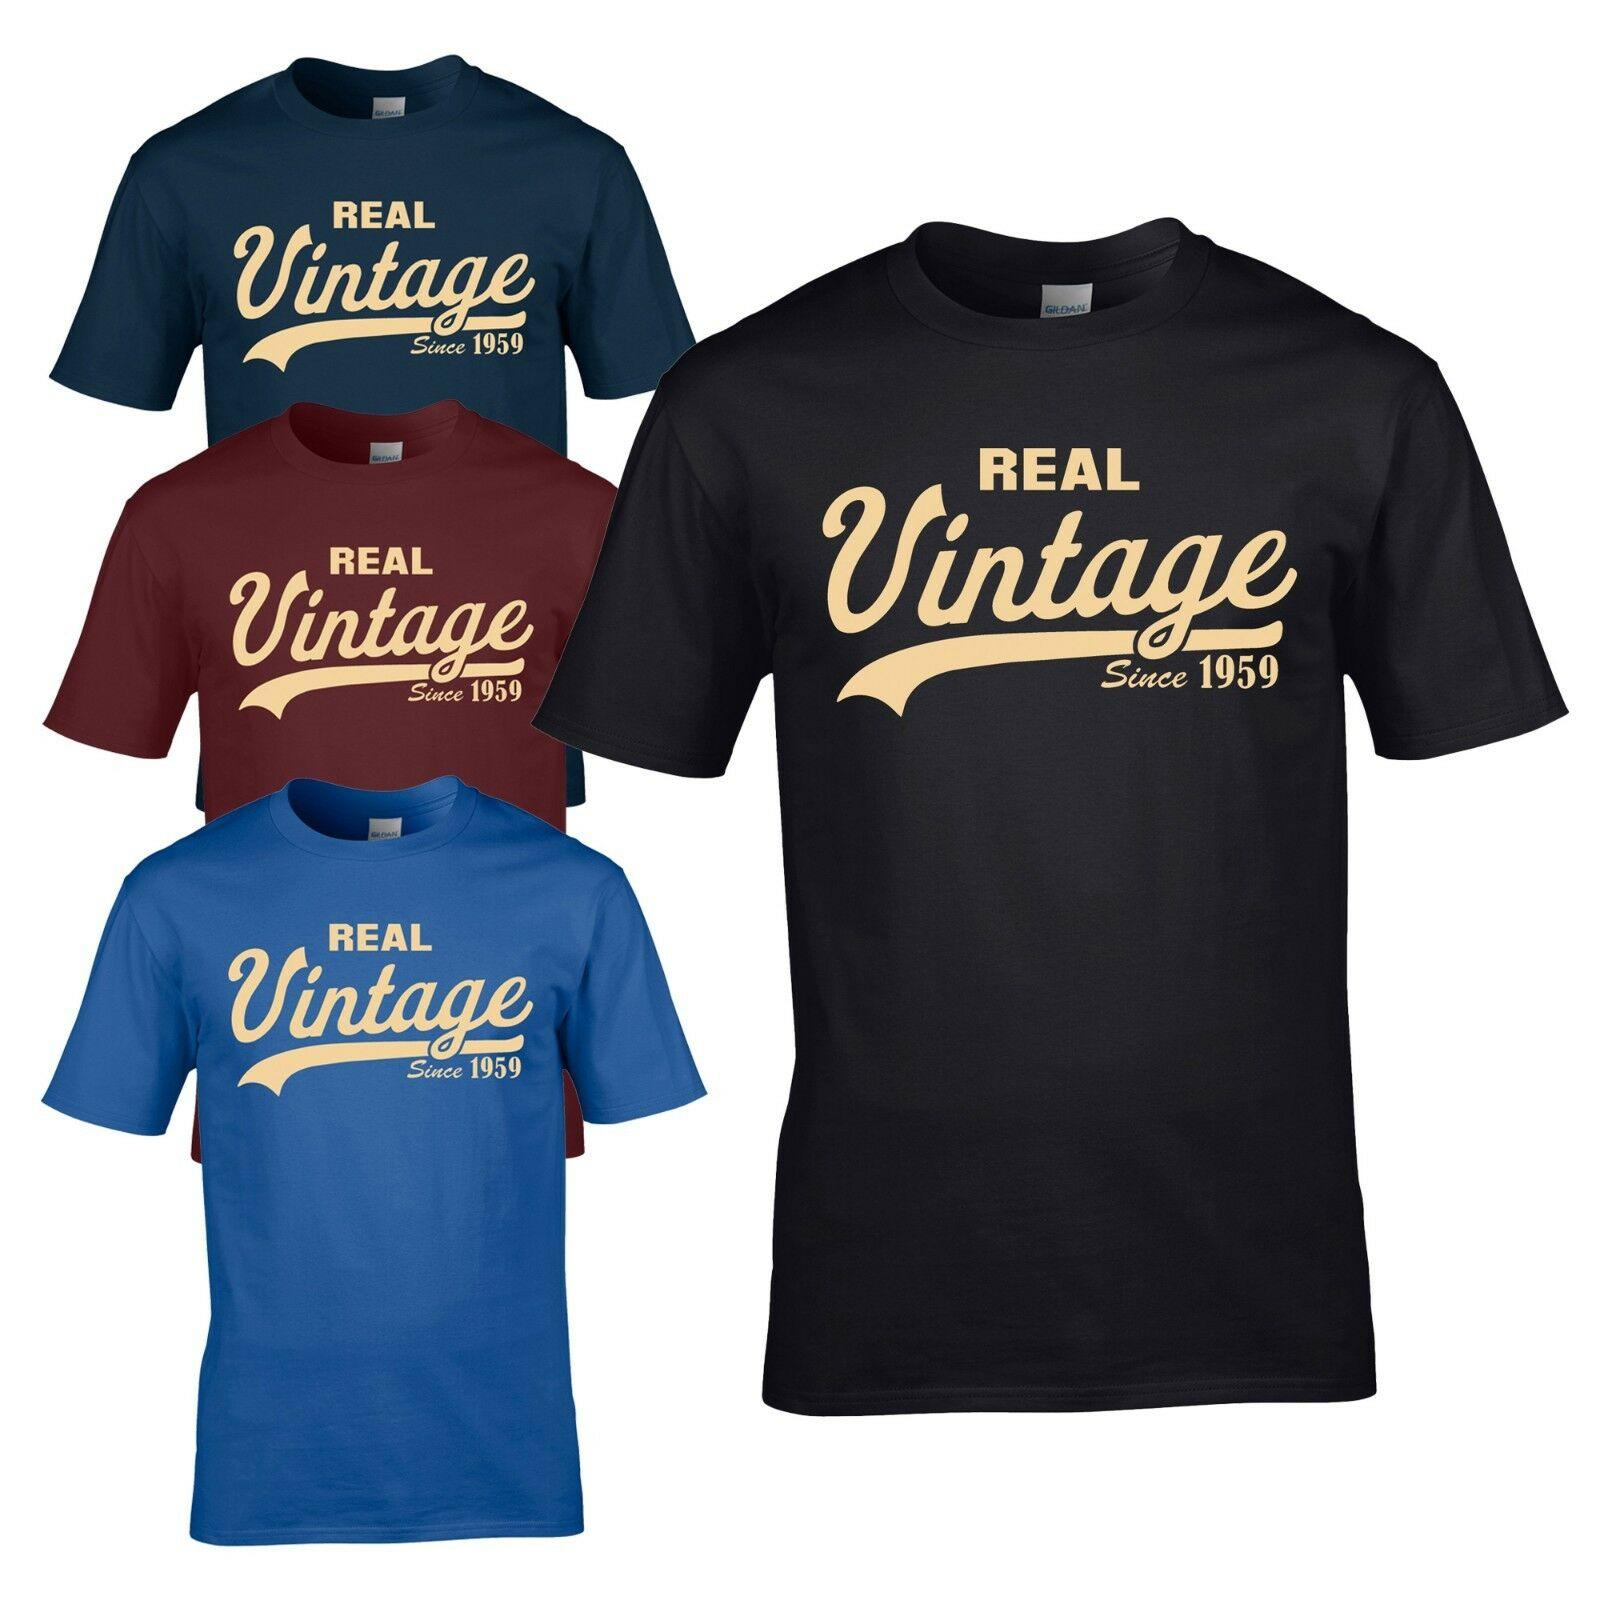 Vintage Since 1959 T Shirt Funny Novelty 60th Birthday Present Mens Gift Top Unisex Casual Tshirt Site Printing Of From Workwearstores